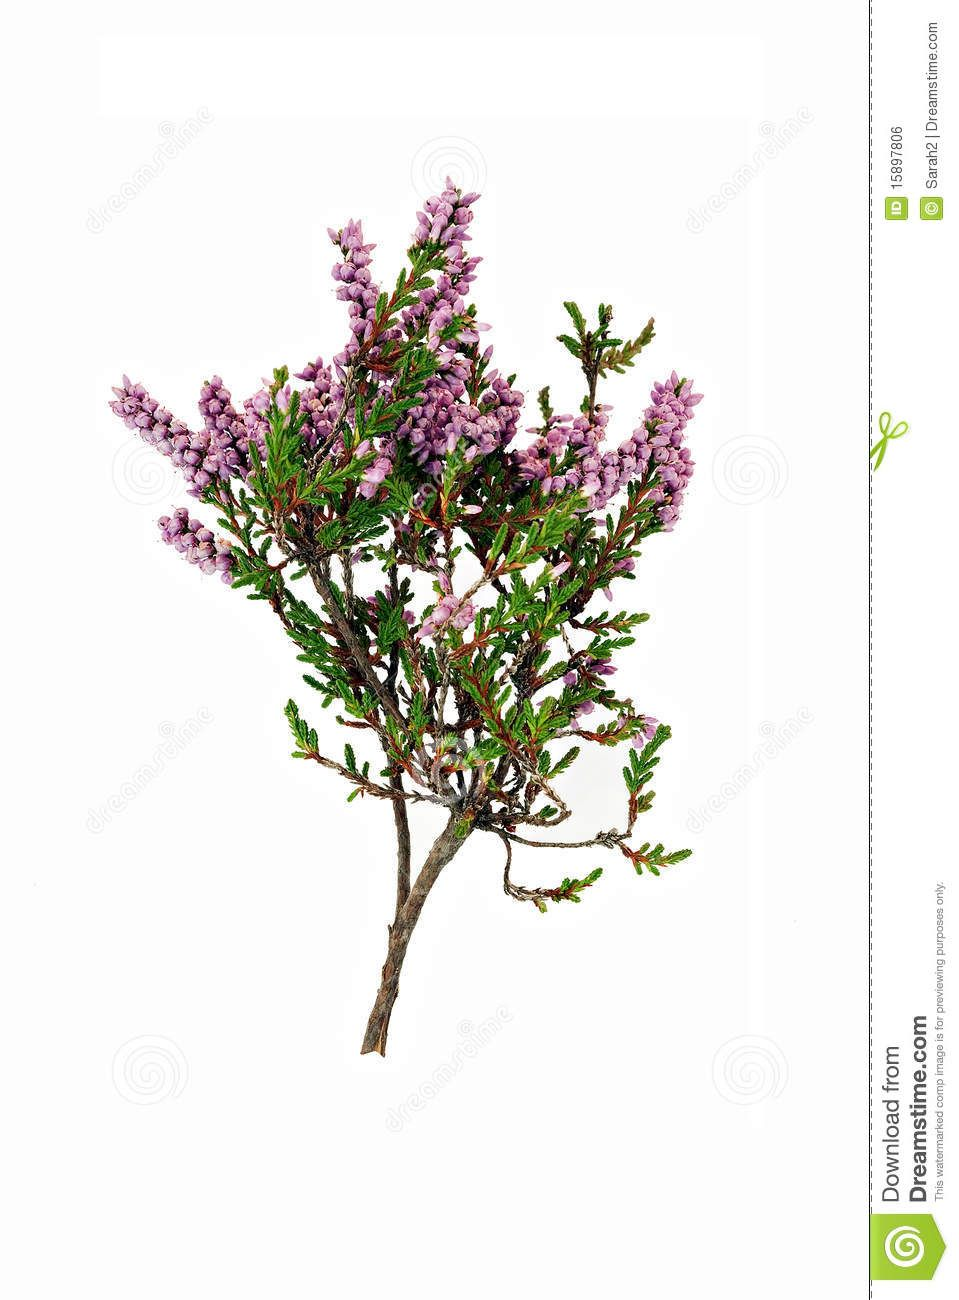 Sprig Purple Heather Isolated 15897806 Jpg 959 1300 Plants Plant Drawing Flower Decorations